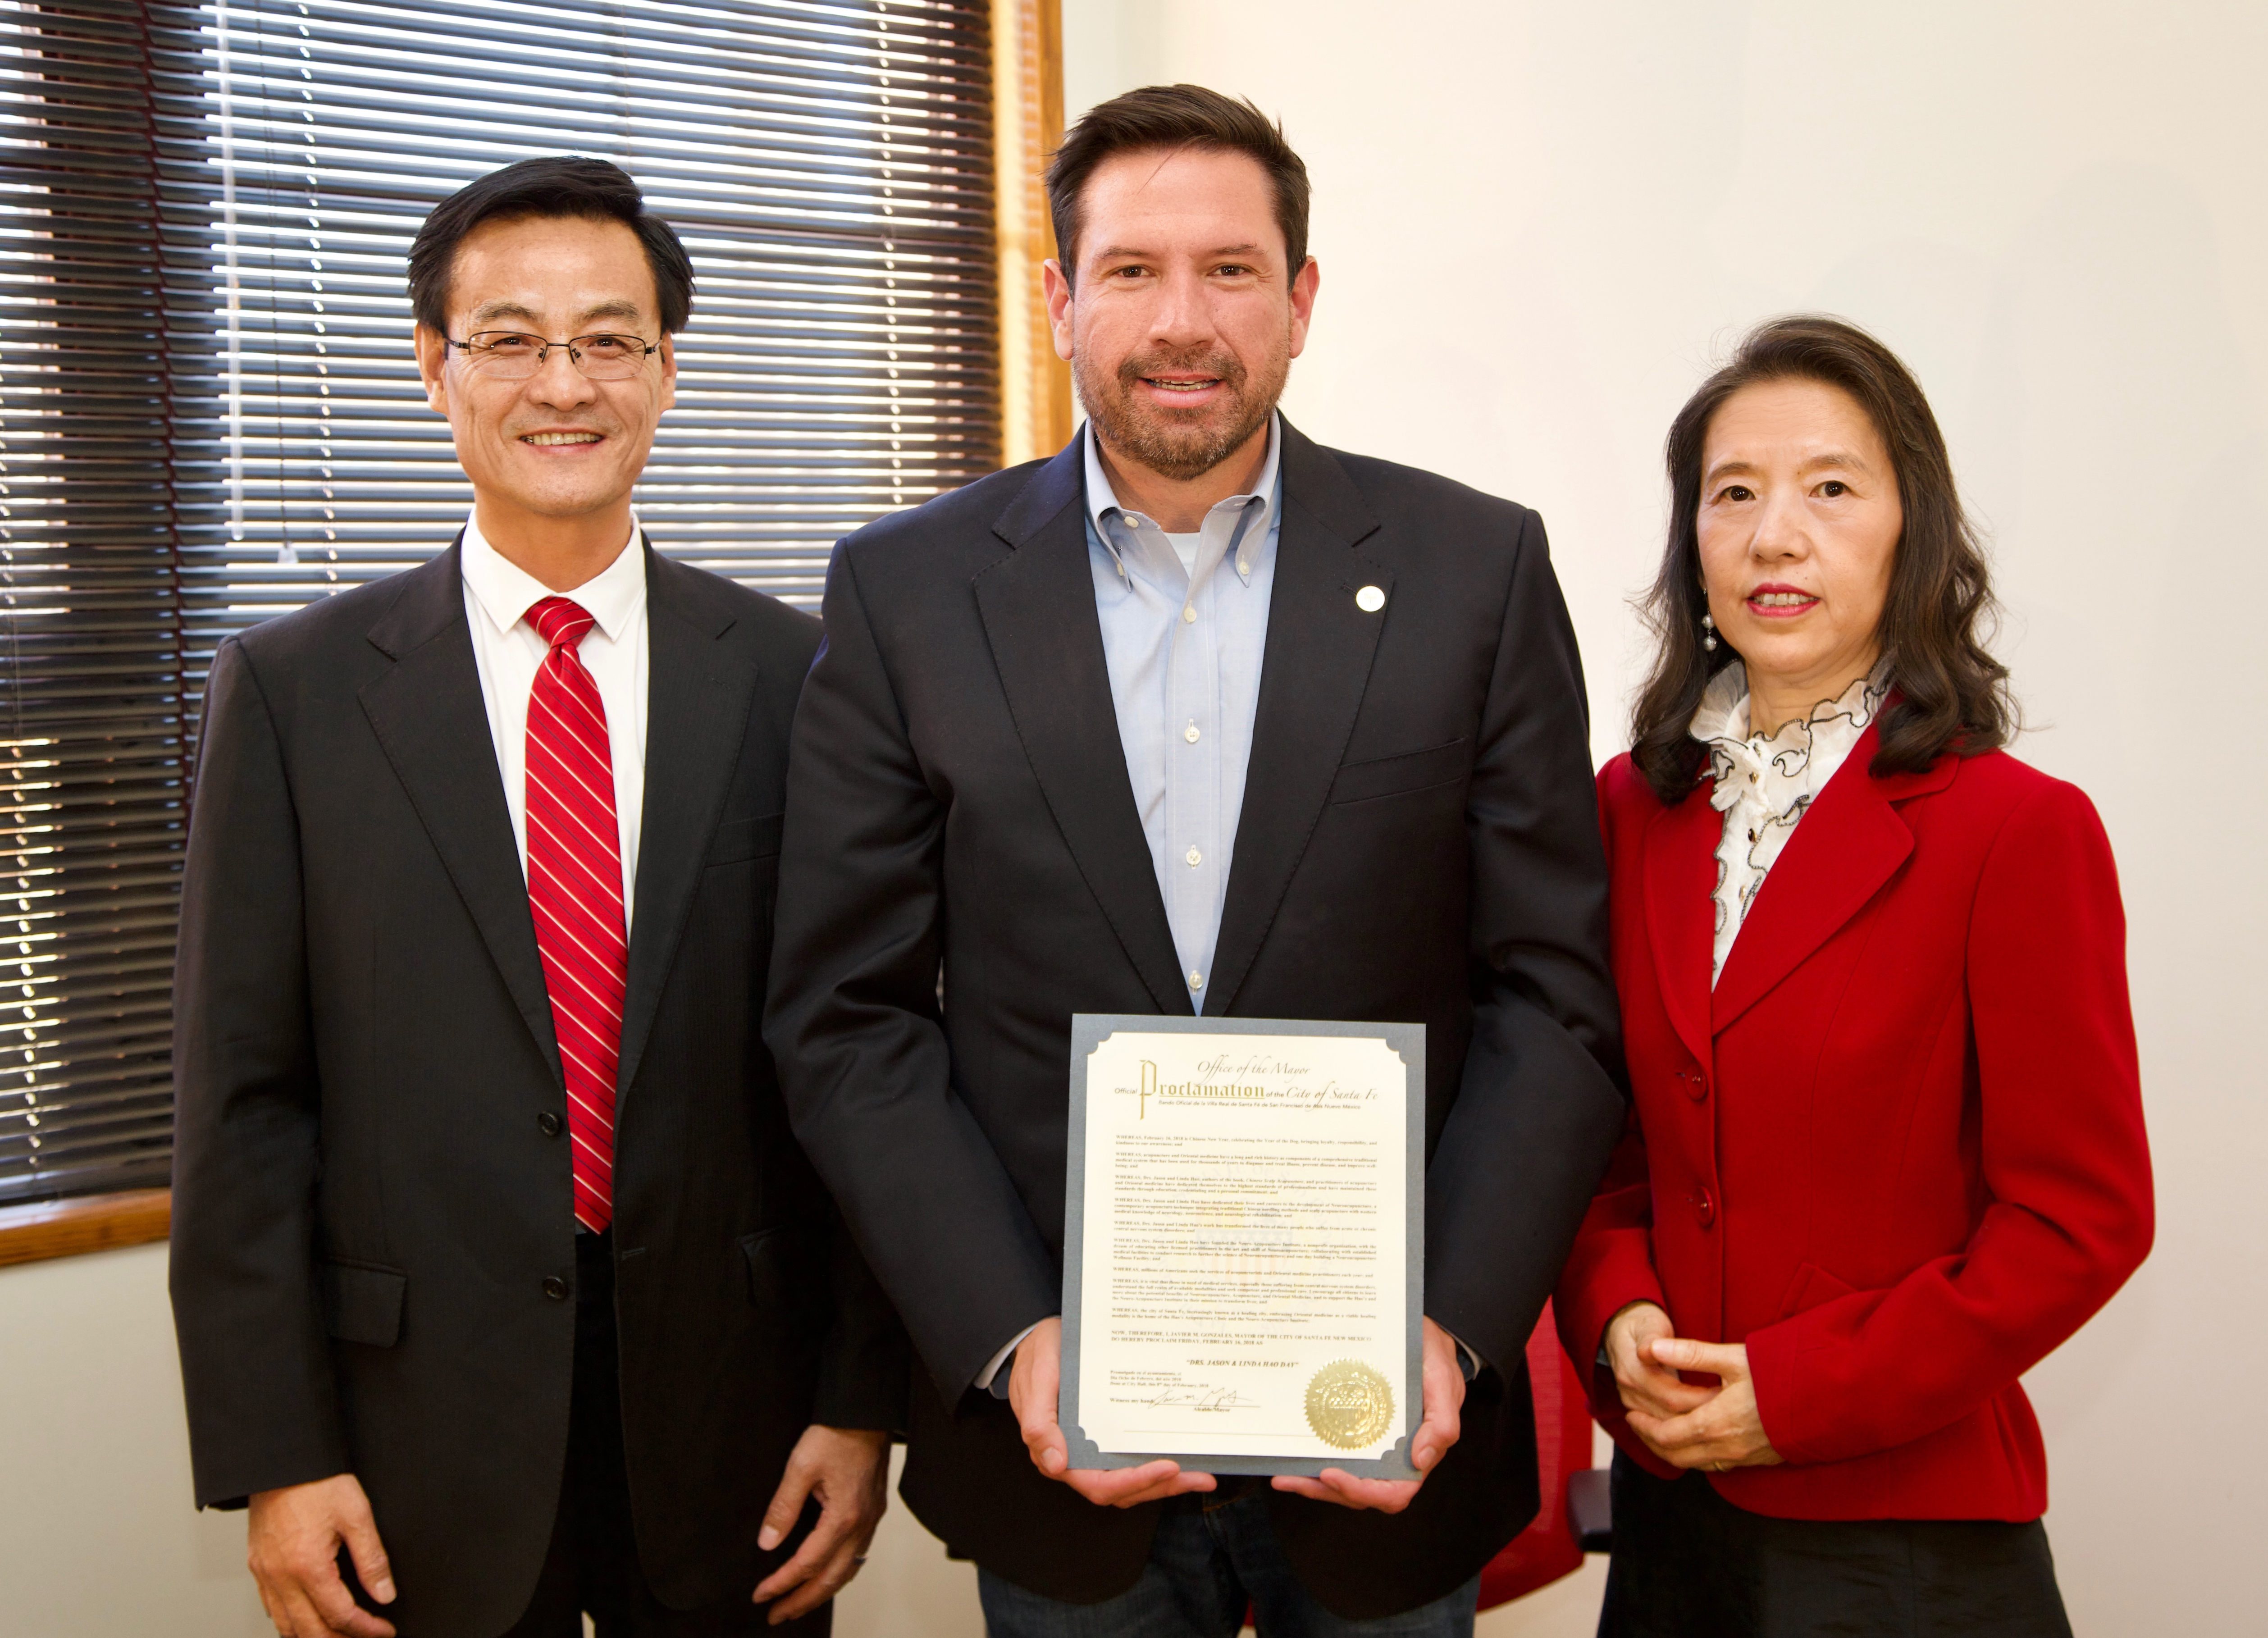 Dr. Jason and Linda Hao Day